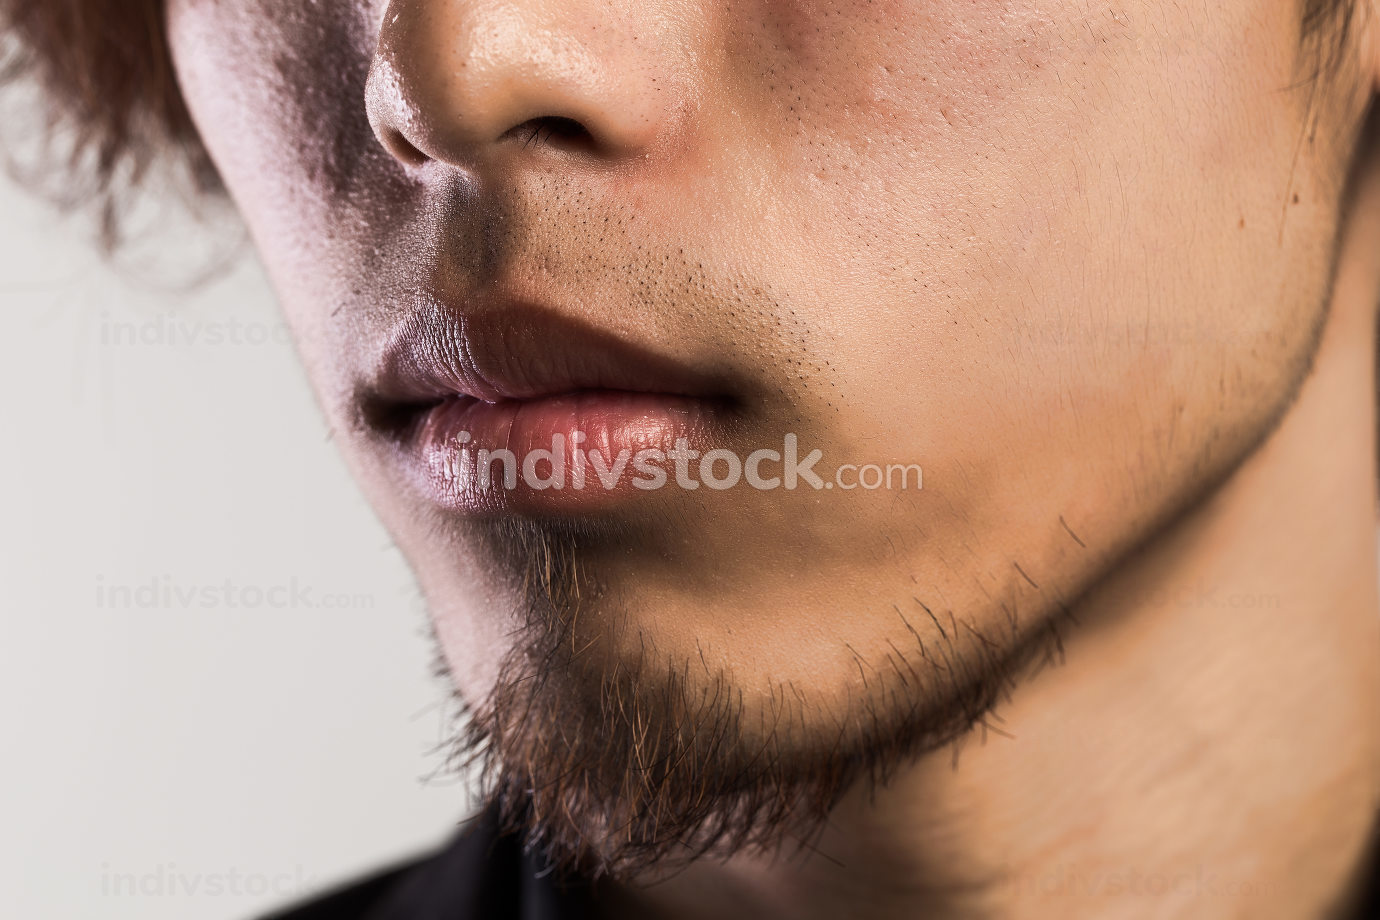 Man's mouth and chin close up